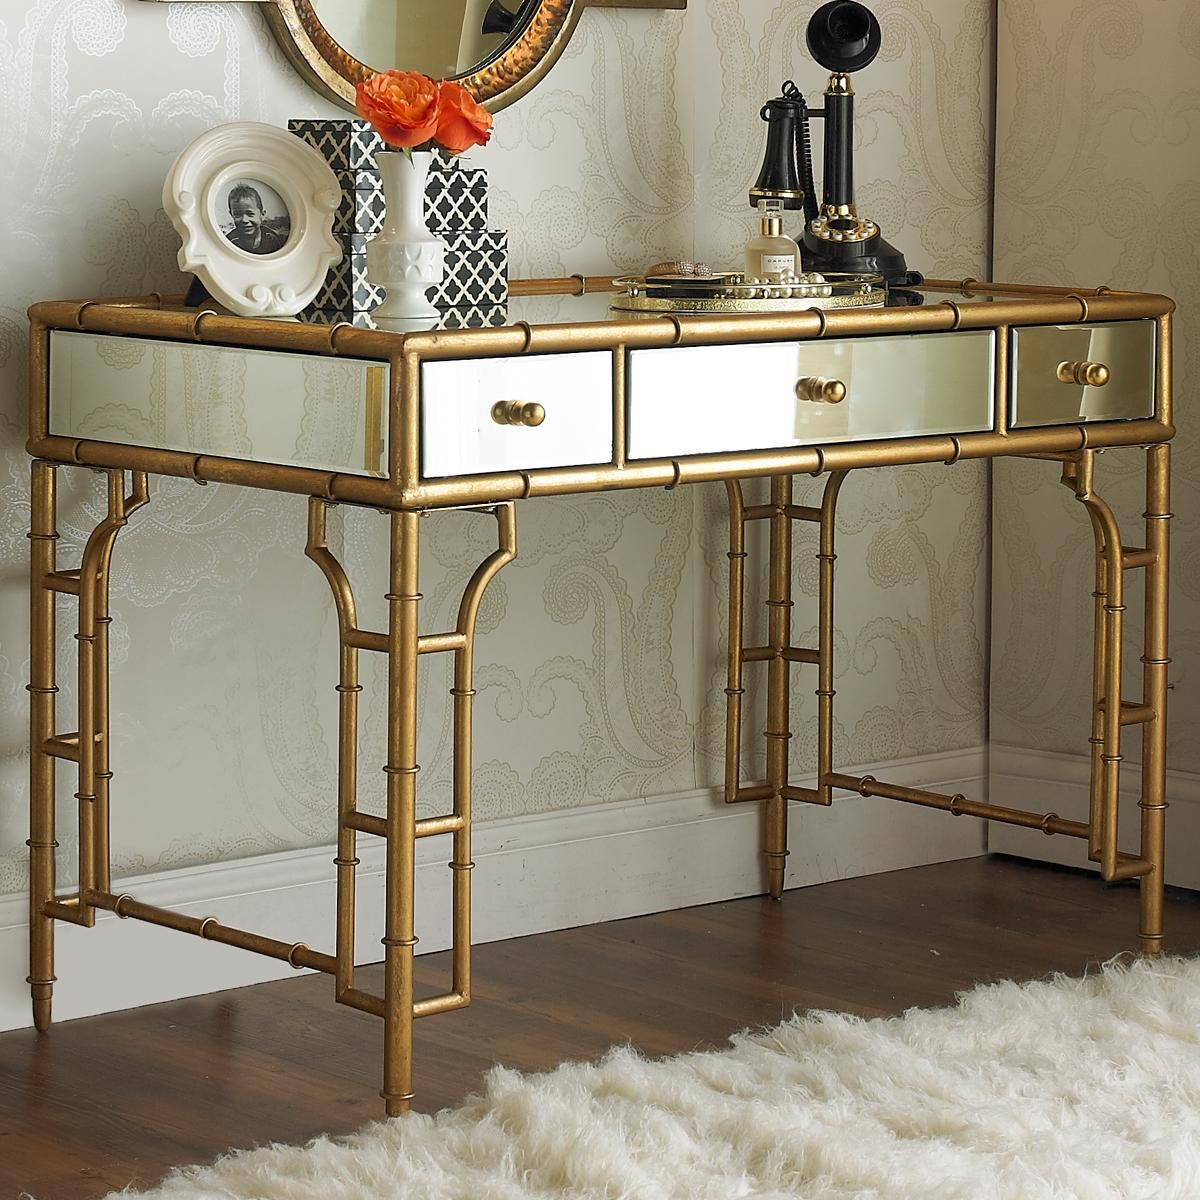 Gold Bamboo And Mirror Vanity Desk More Mirror Glass Vanities And Glasses